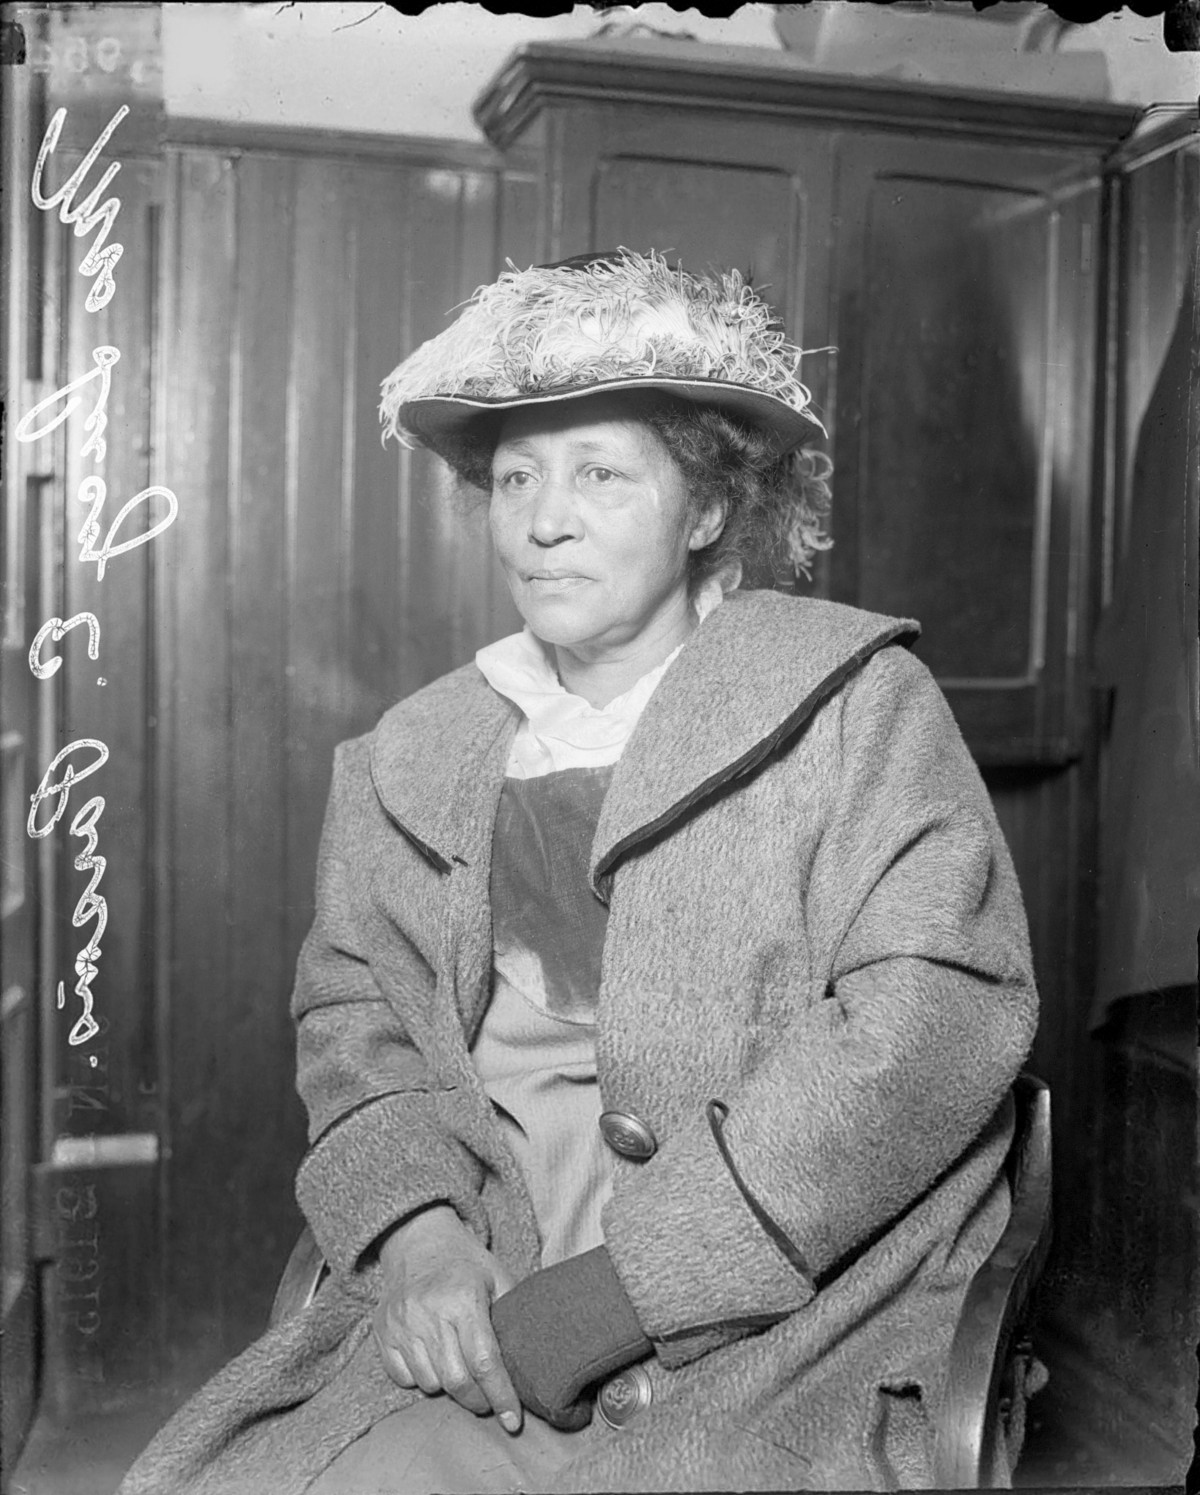 Lucy Parsons wanted to take down the rich by any means necessary